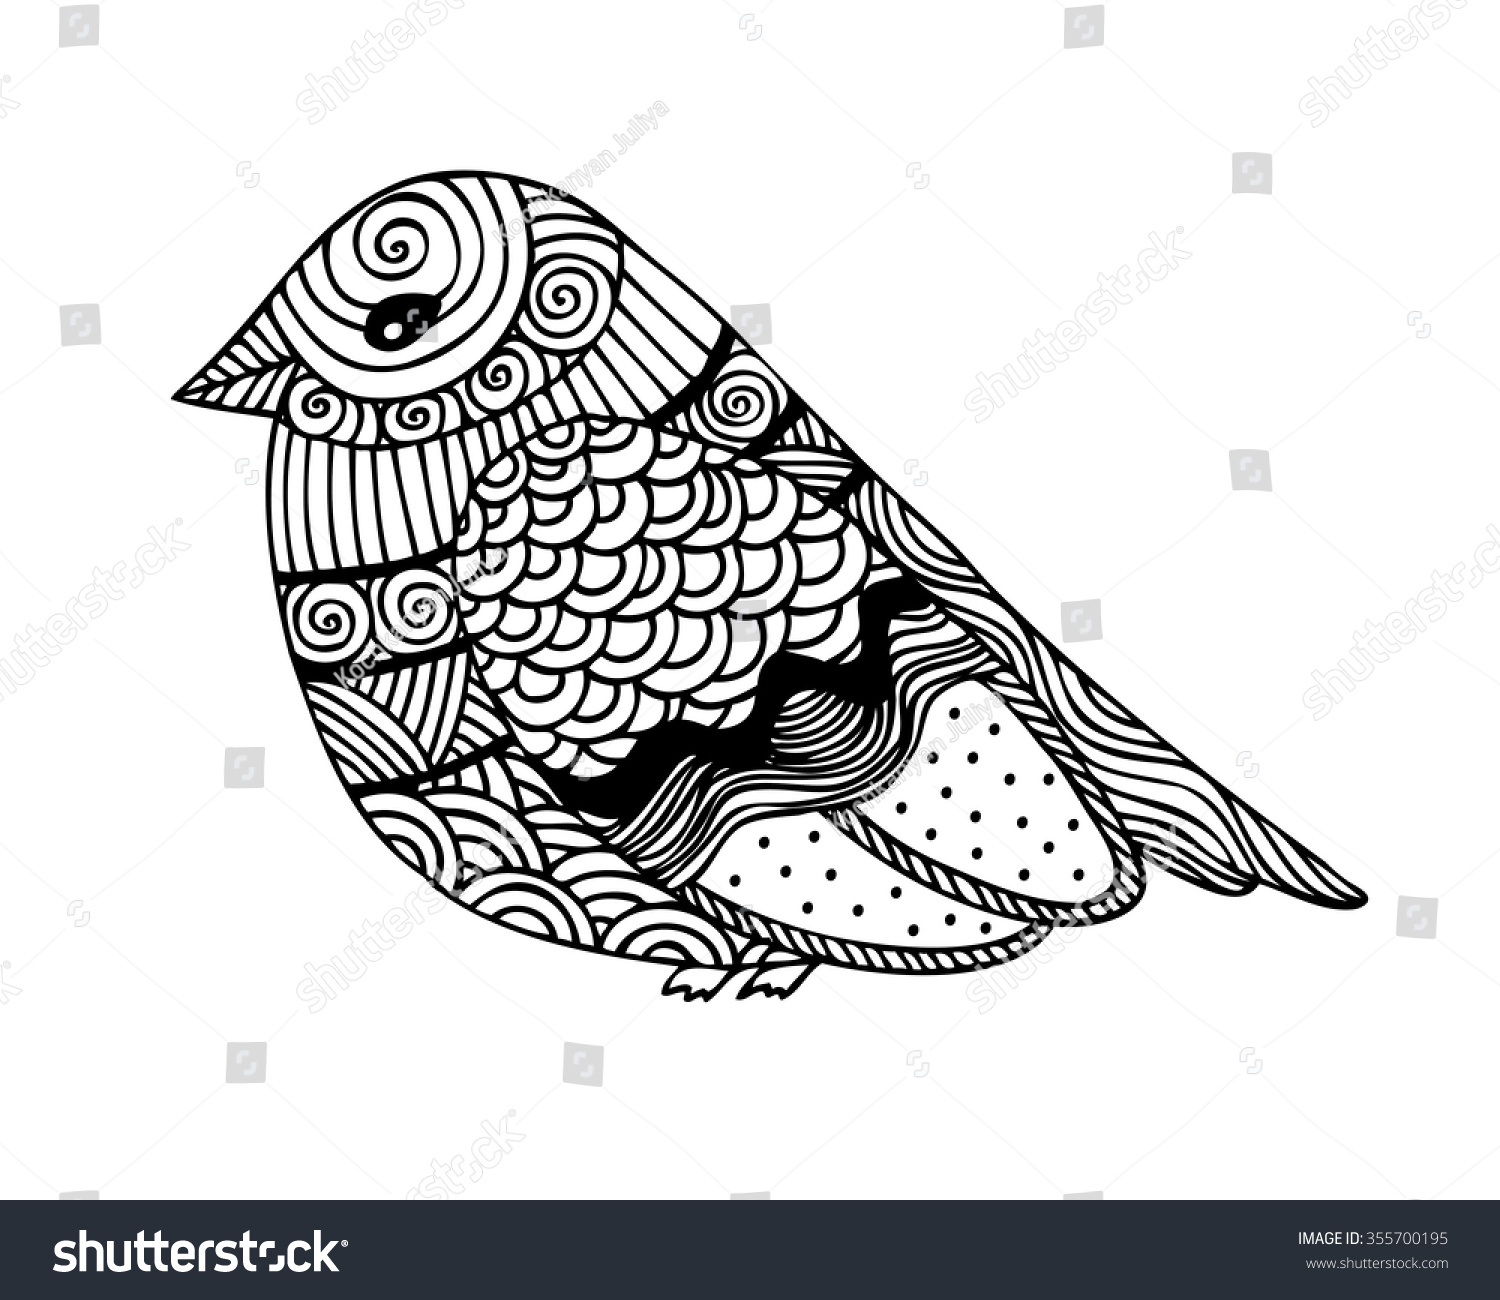 on pinterest coloring pages adult coloring and adult coloring pages